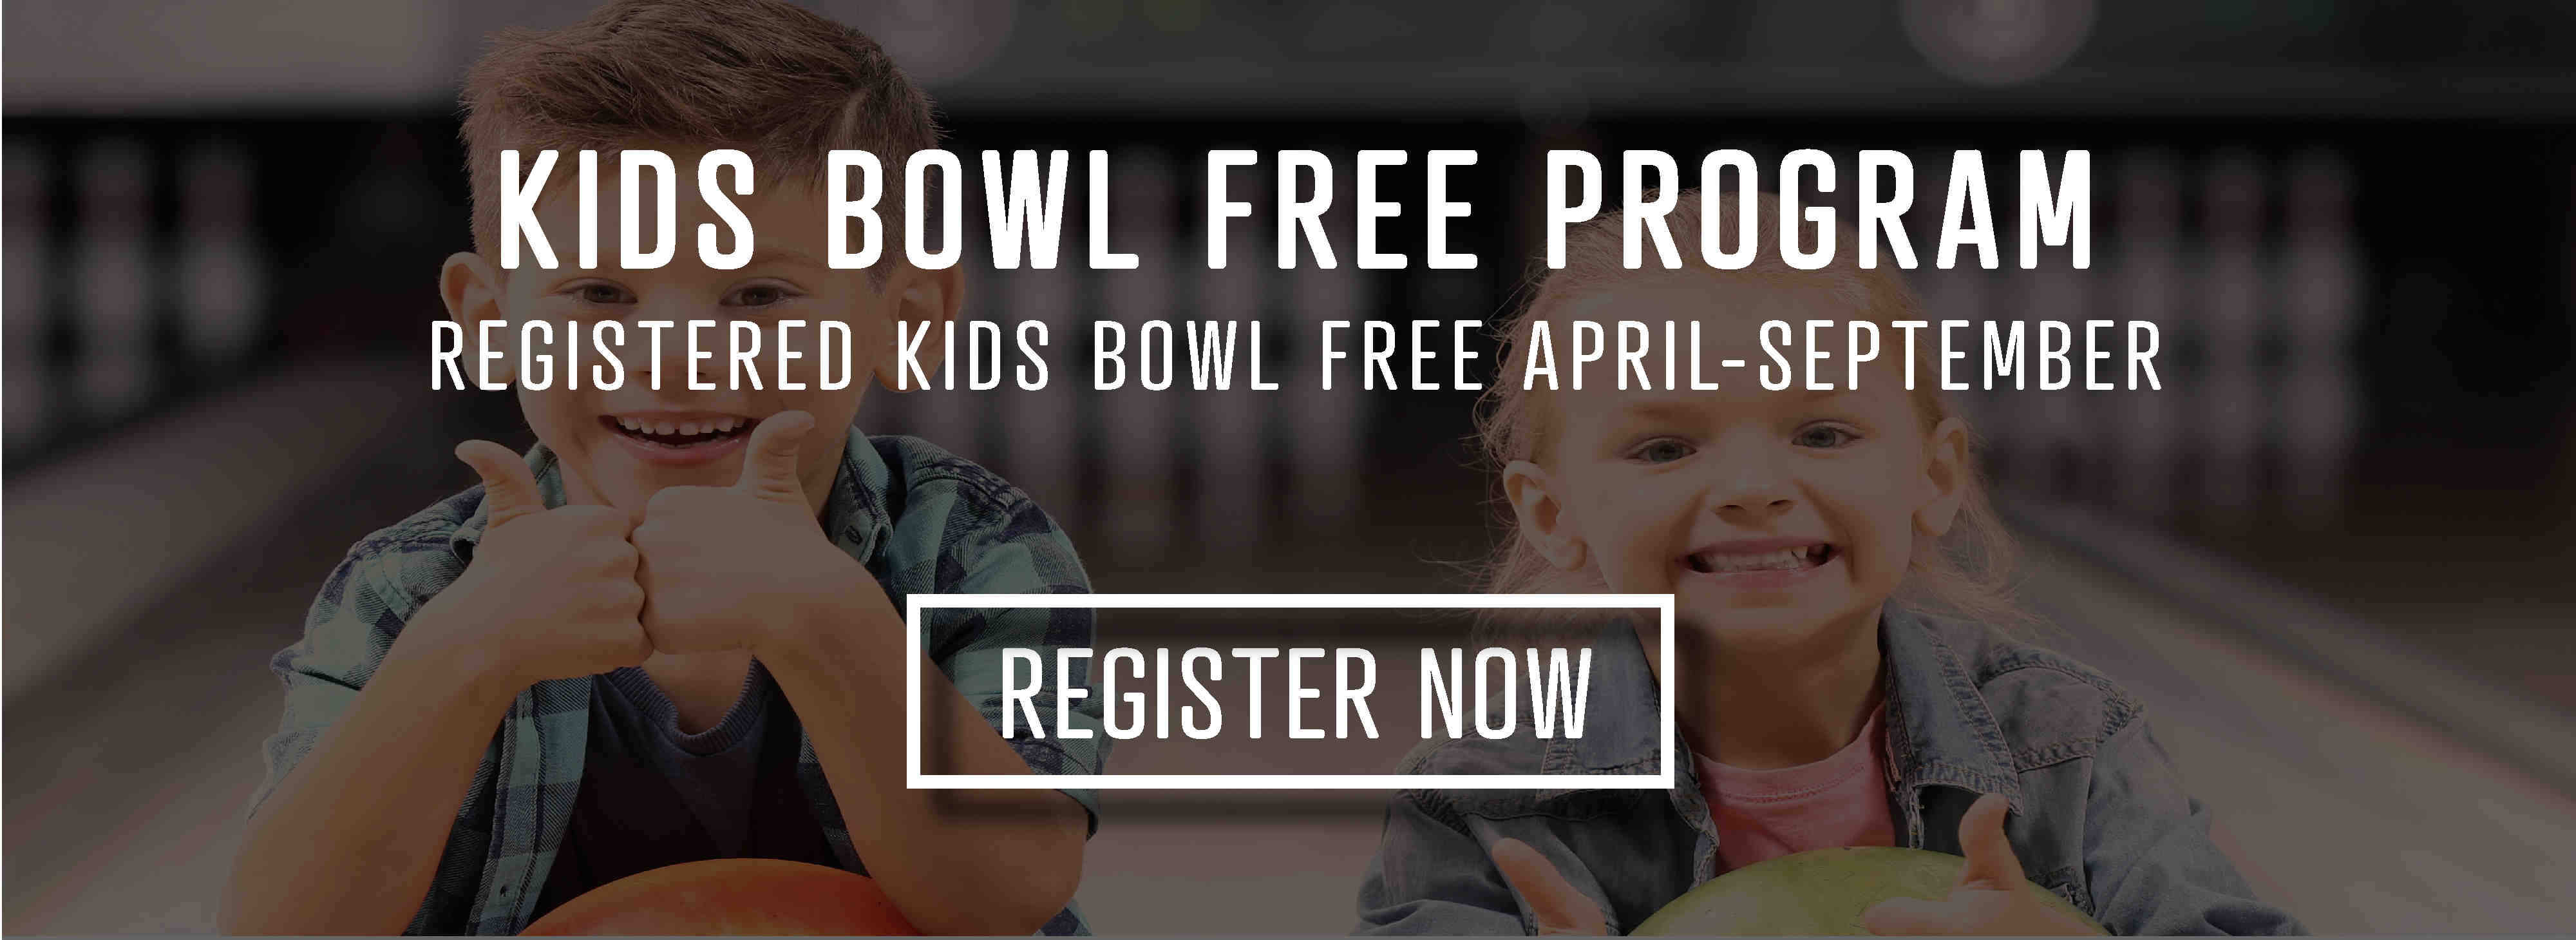 Kids bowl free program - click here to register your child today